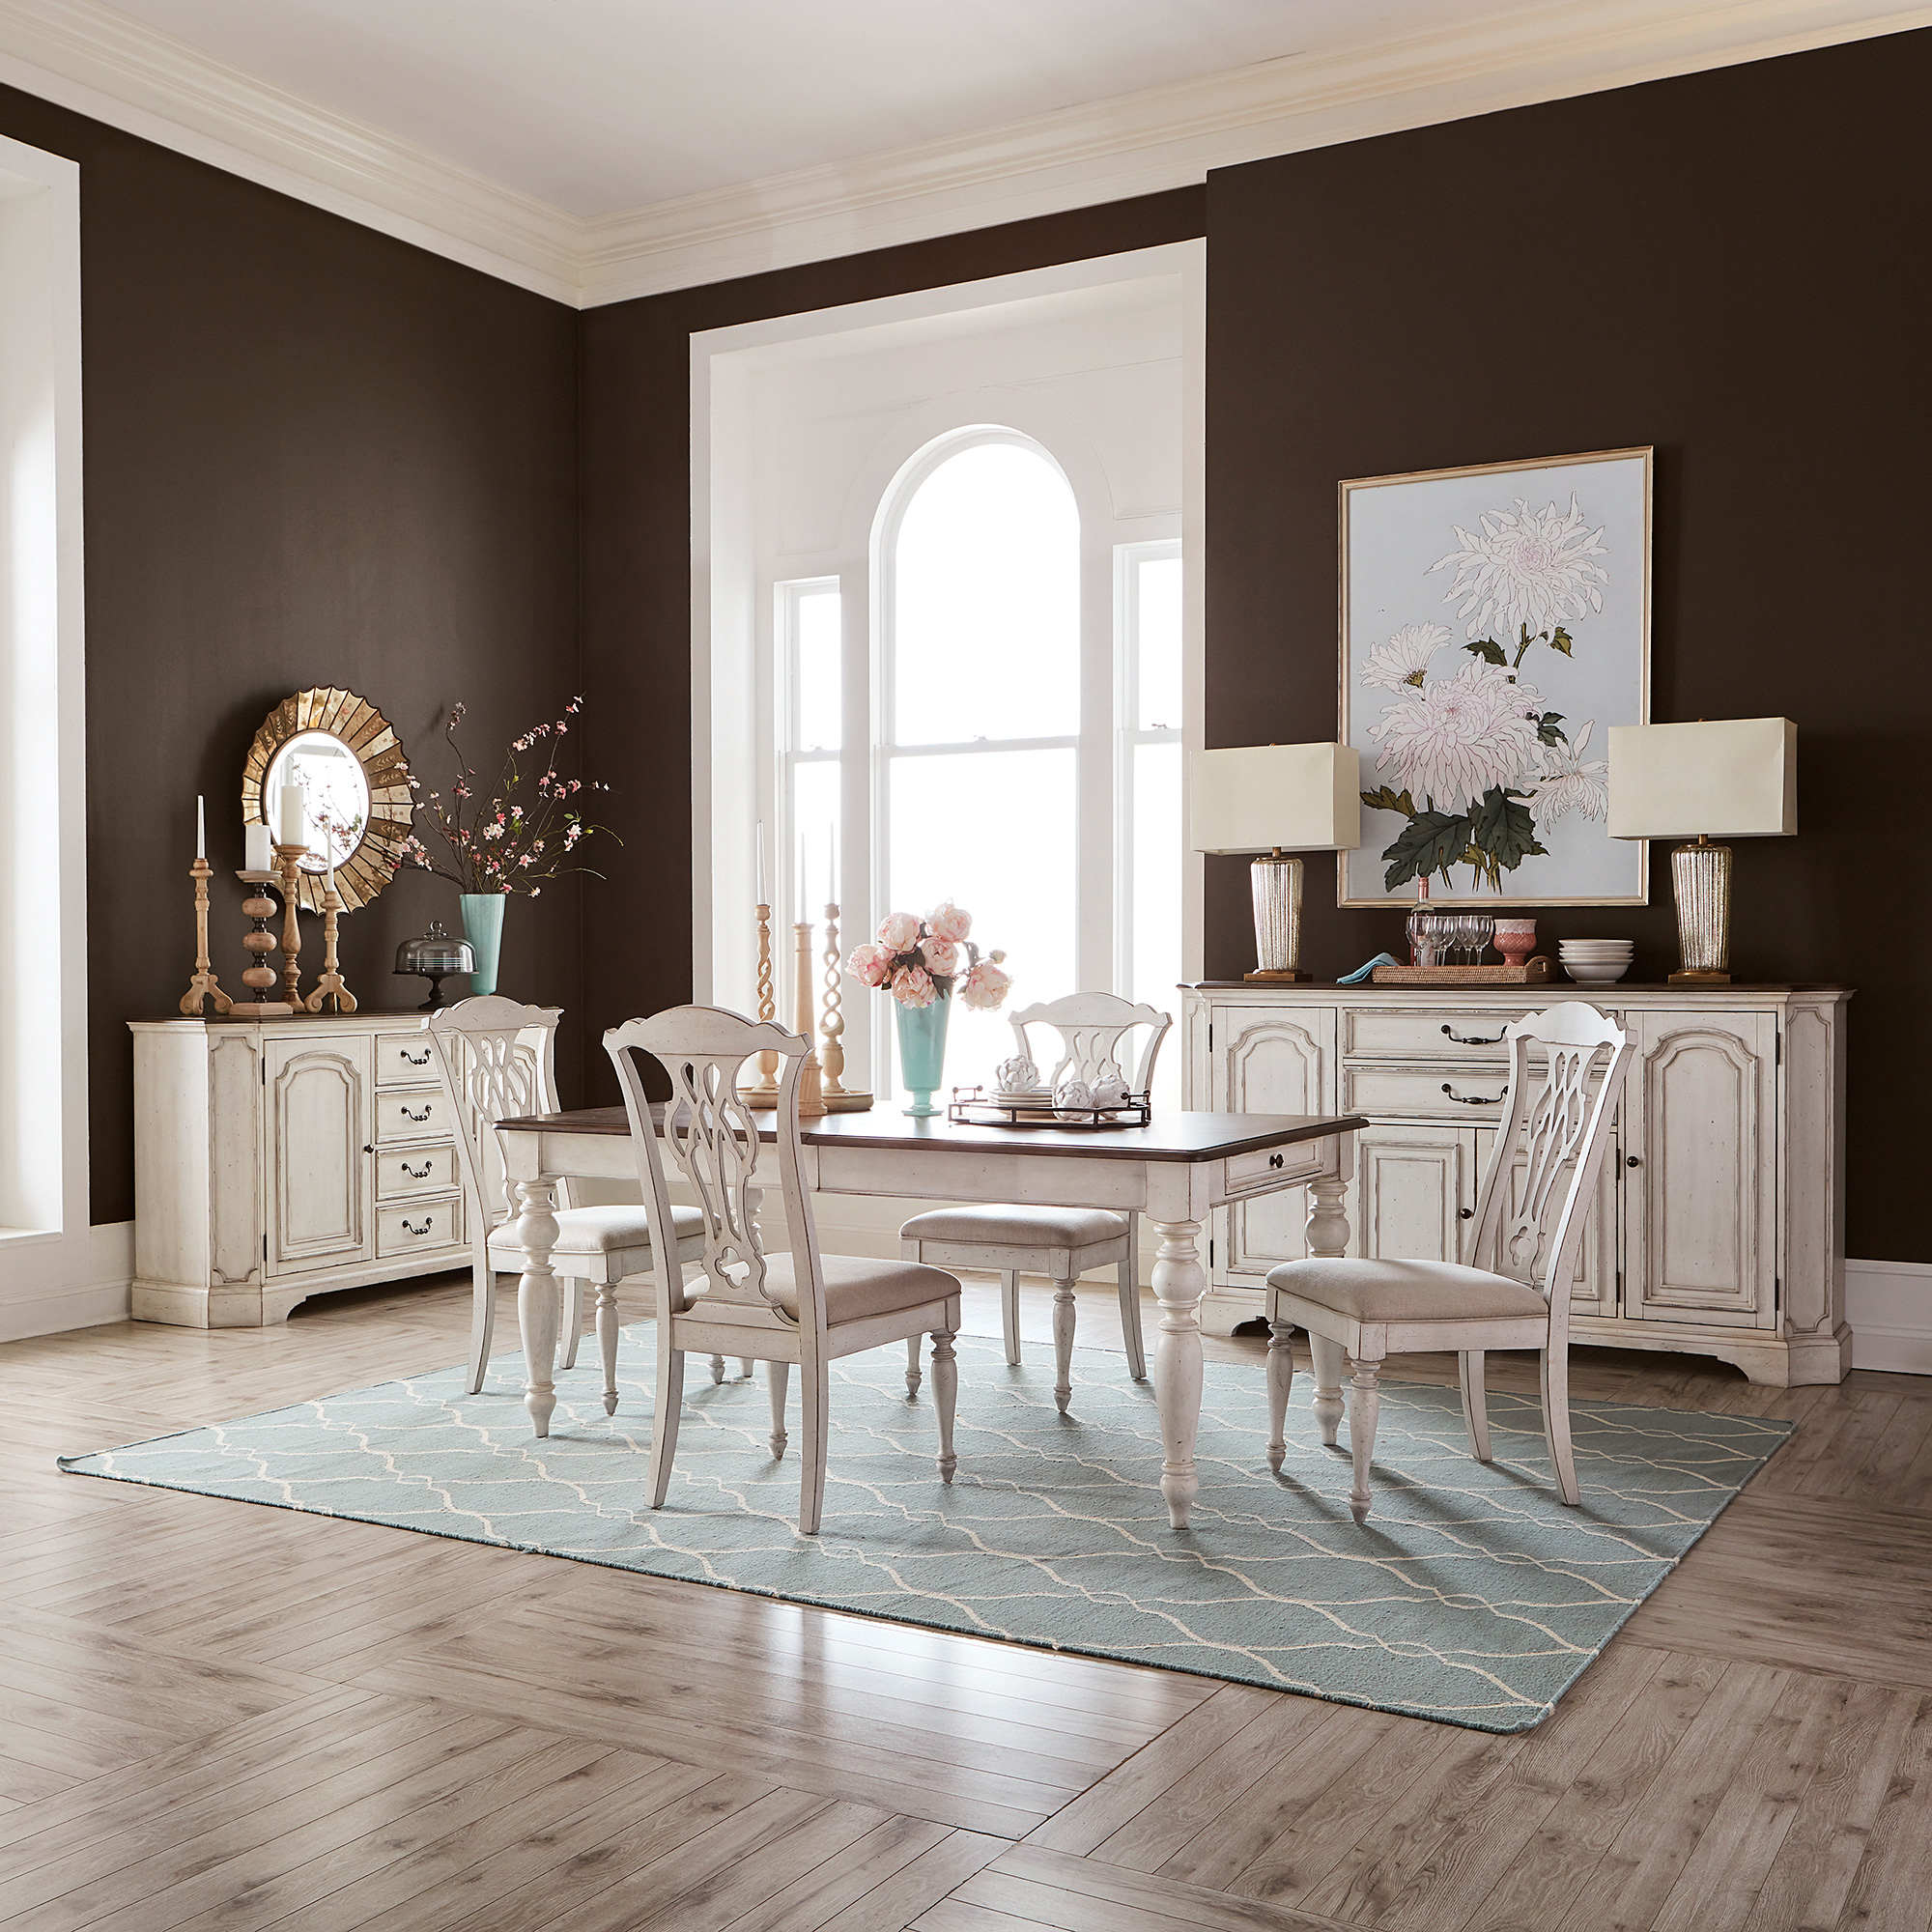 Liberty Furniture | Abbey Road White 5 Piece Dining Set